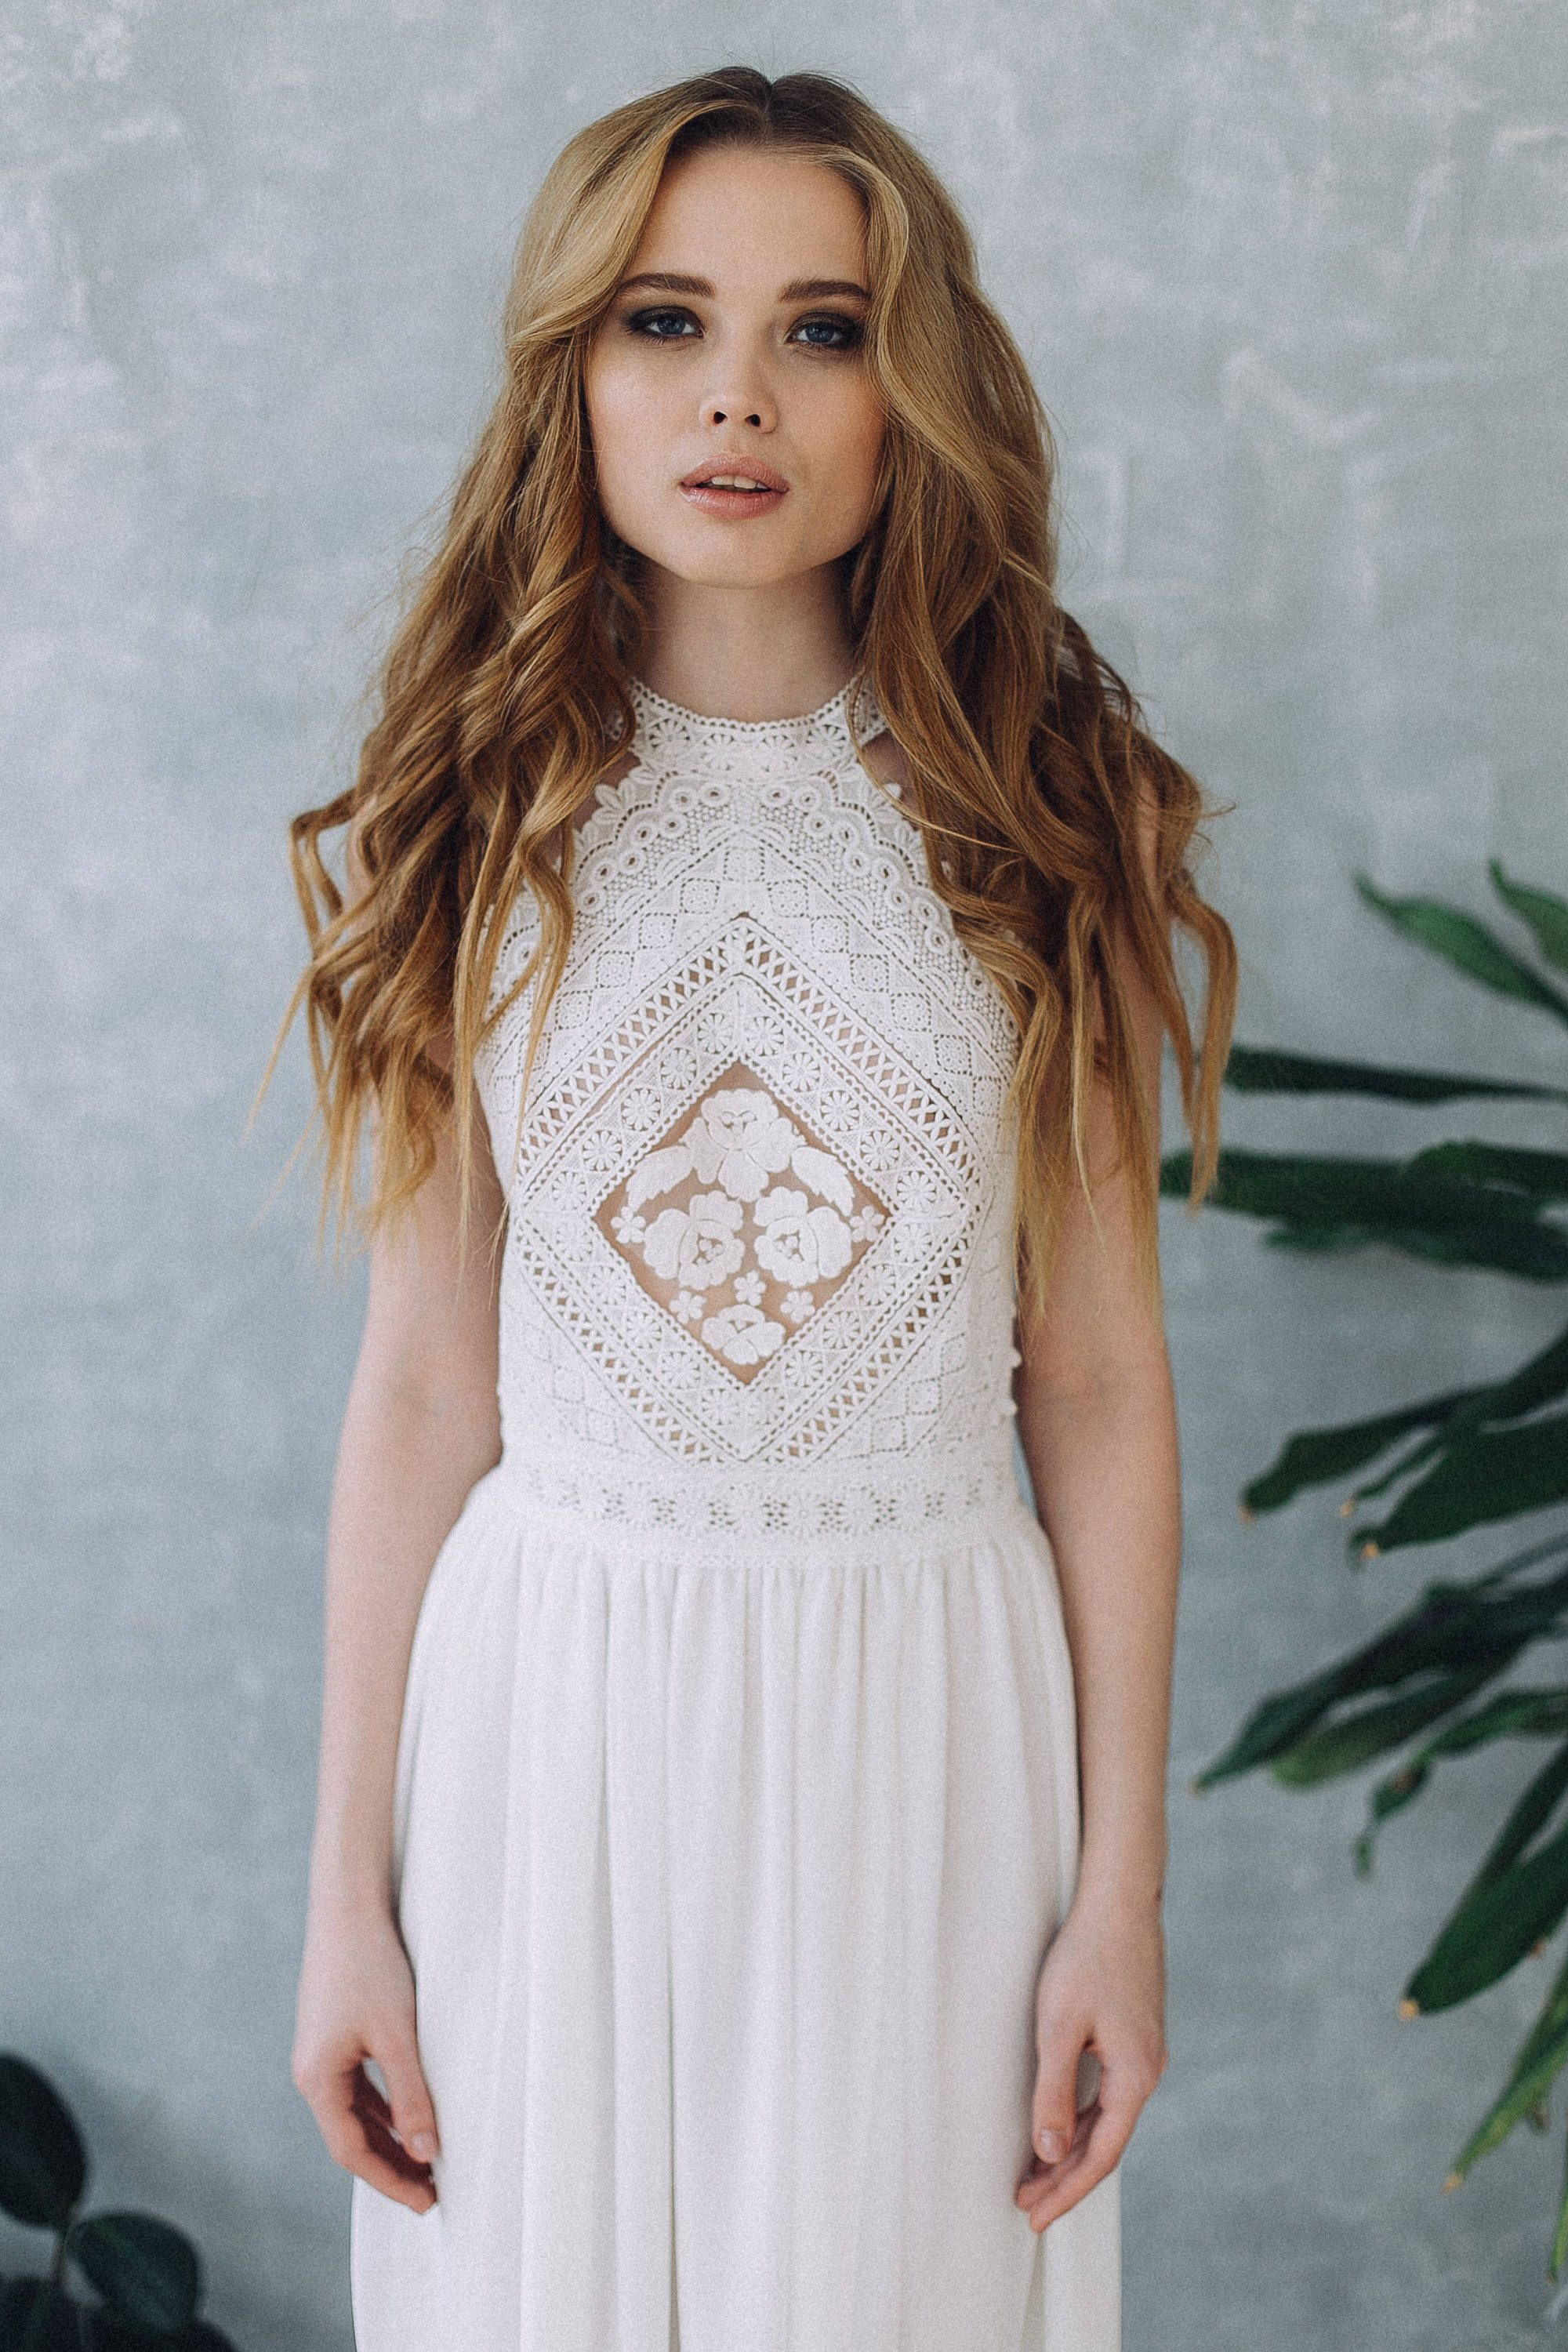 Dress ss wedding dress boho wedding dress romantic wedding dress